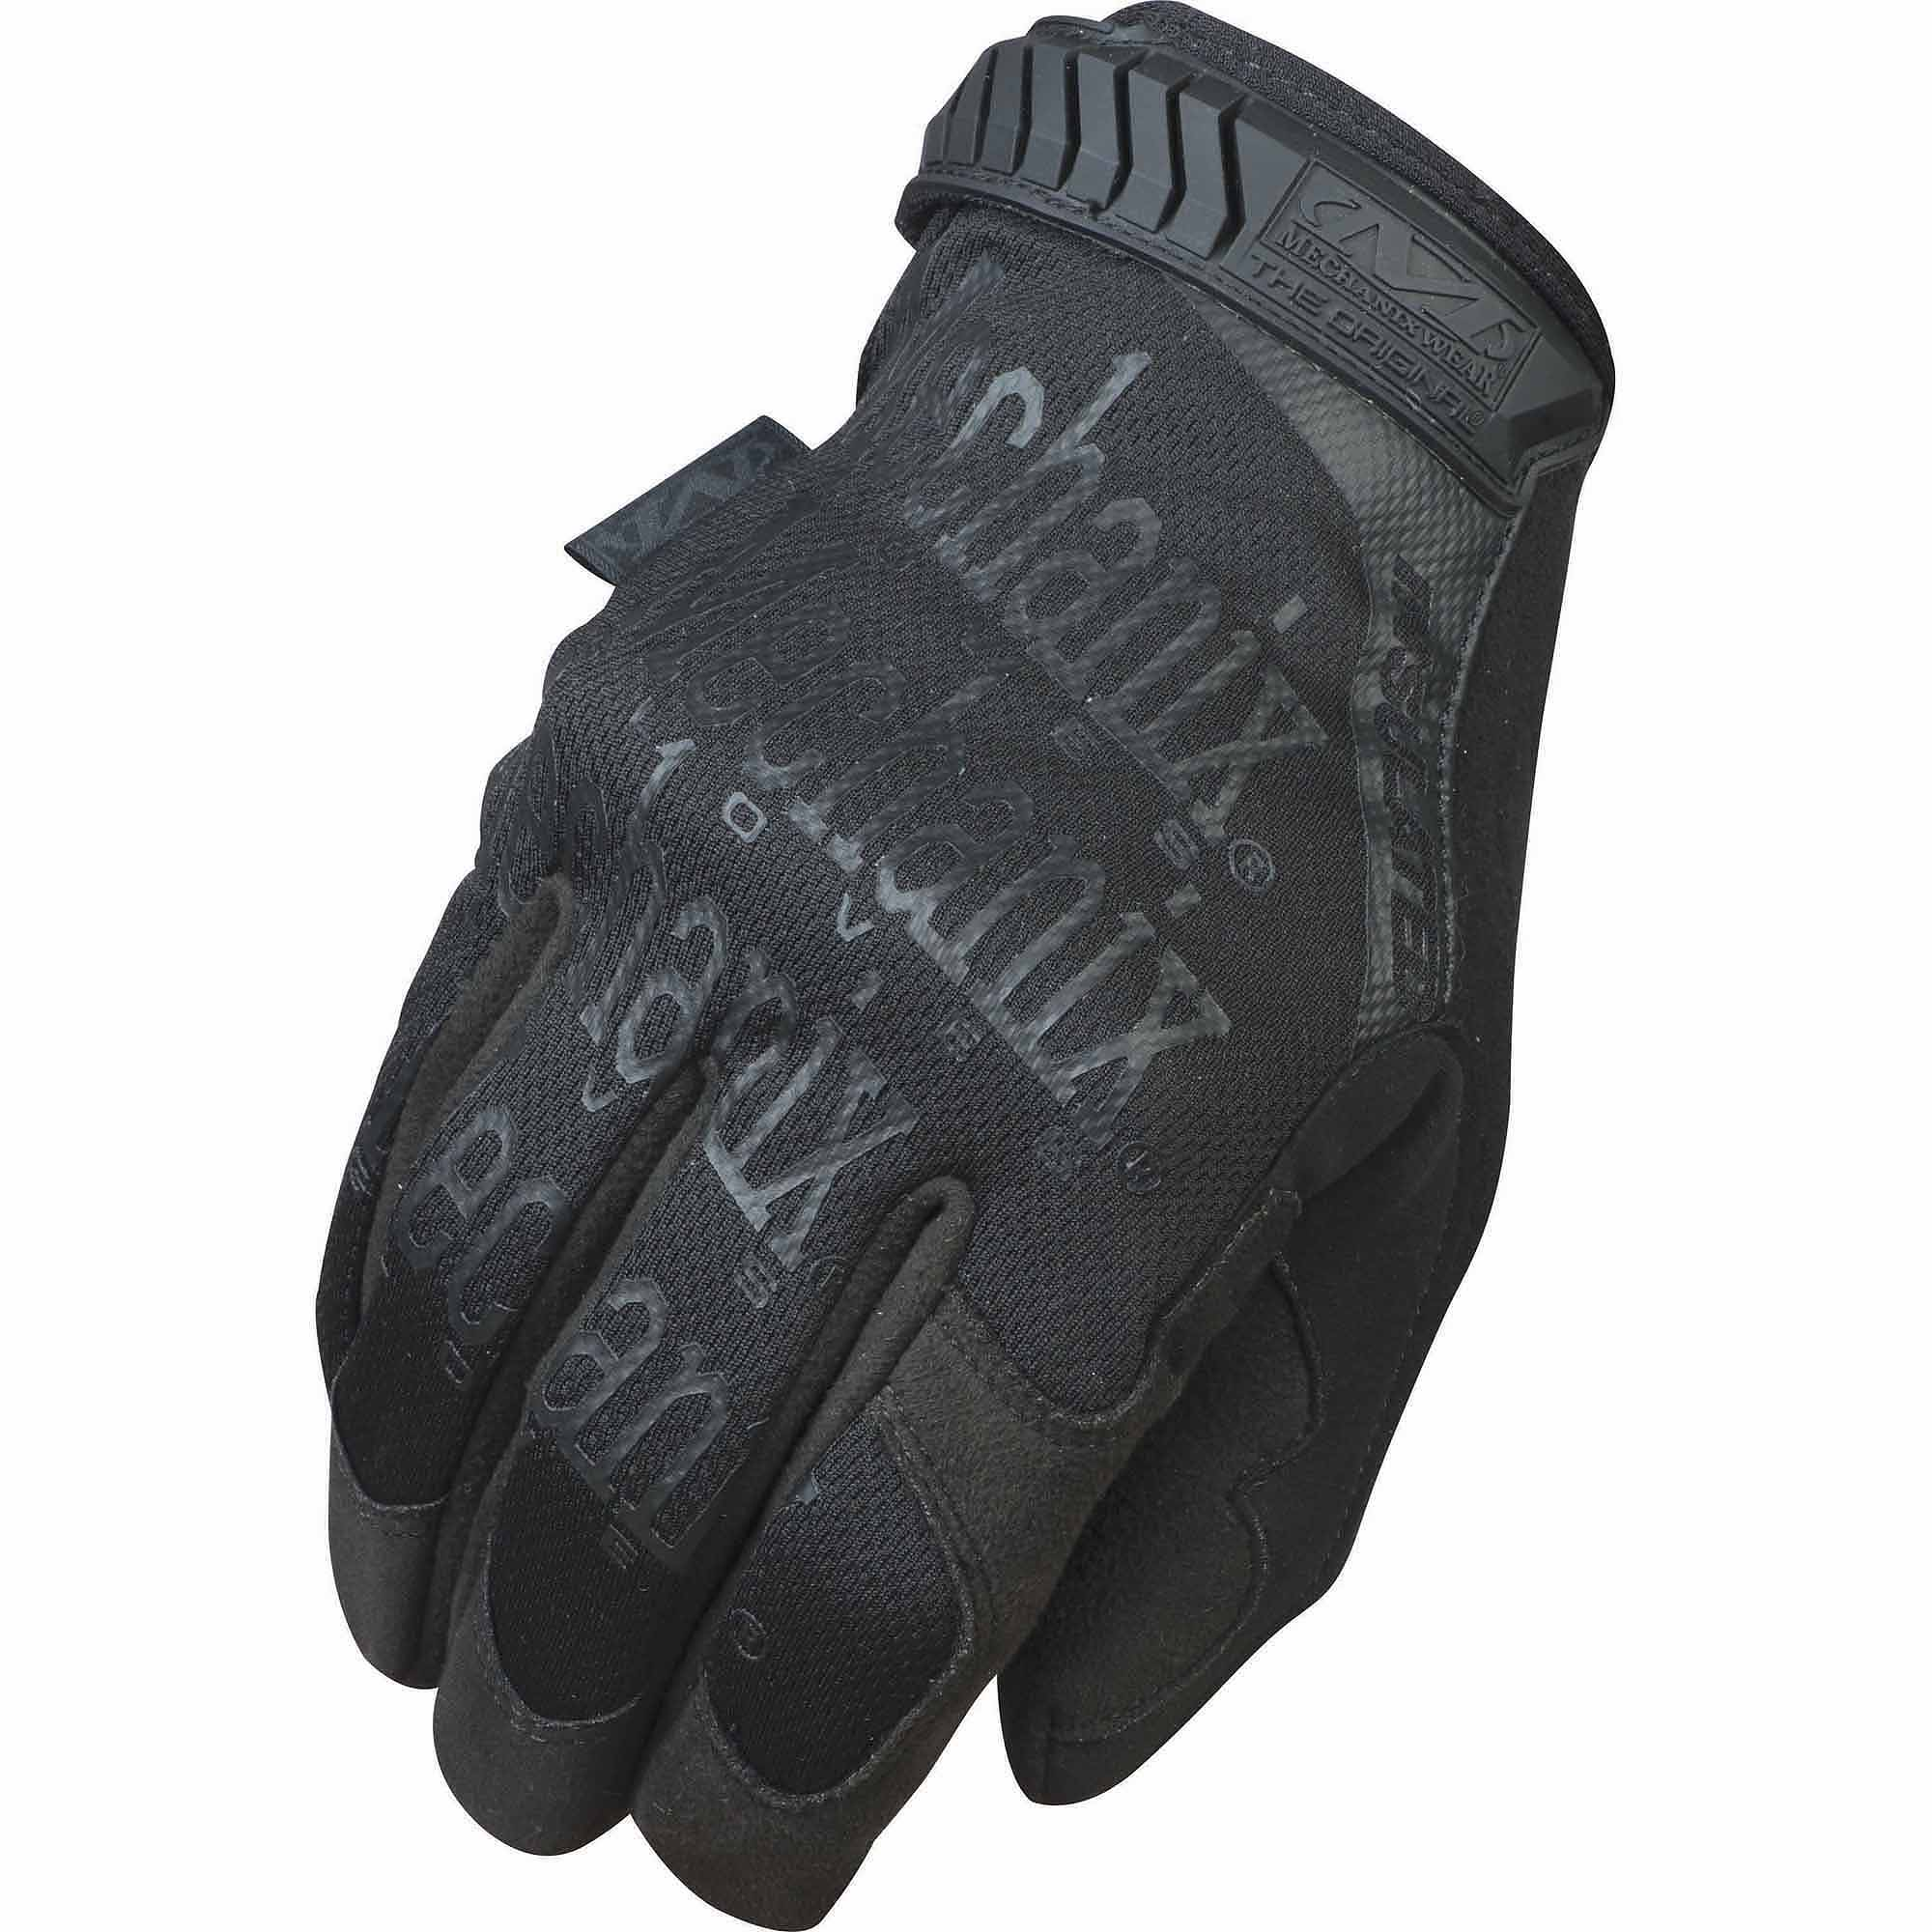 Mechanix Insulated Glove, Black